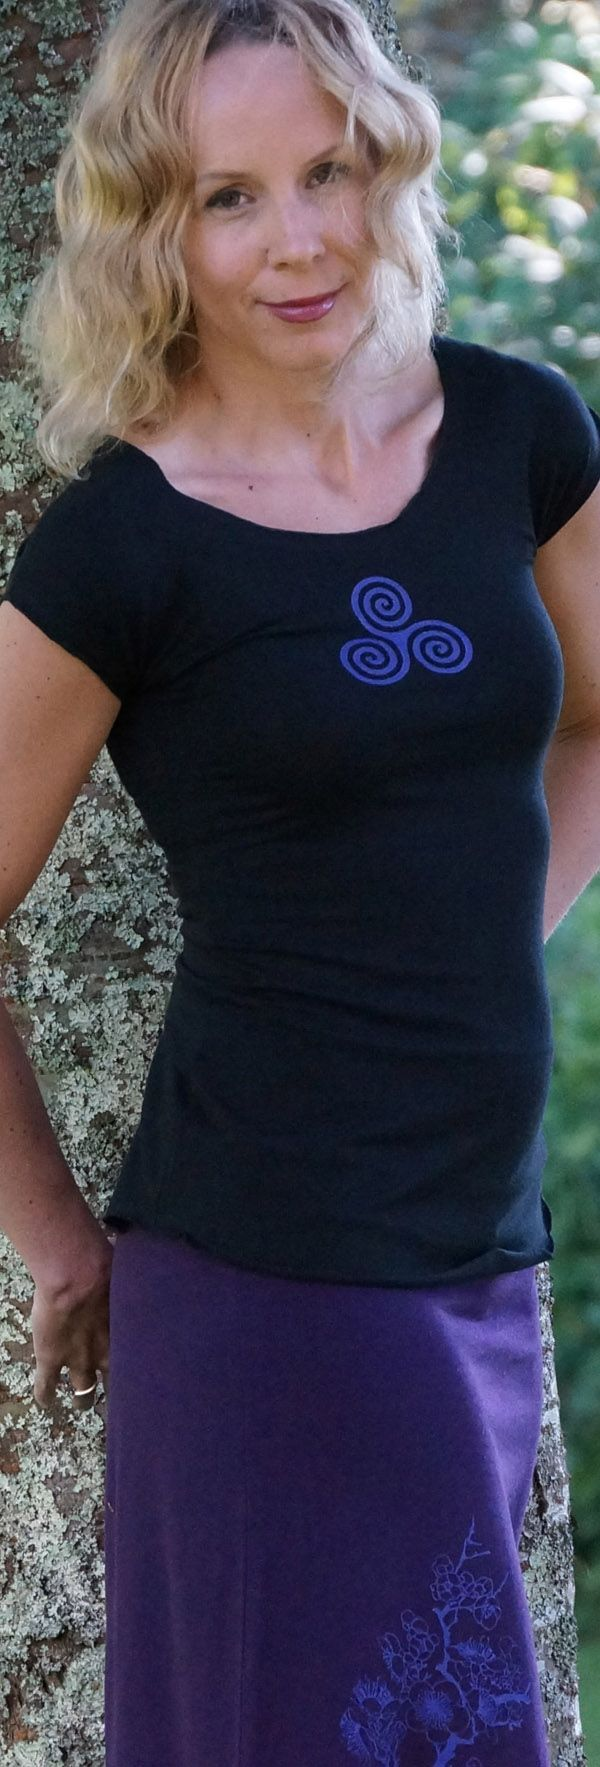 Feeling Beautiful in Bamboo !  Black Bamboo Cap Sleeve Tee printed with the Triple Goddess worn with the Plum Bamboo Skirt  with Sakura Blossom Print from Squeezed Yoga Clothing http://squeezed.ca/shop/plum-bamboo-skirt-with-violet-cherry-blossom